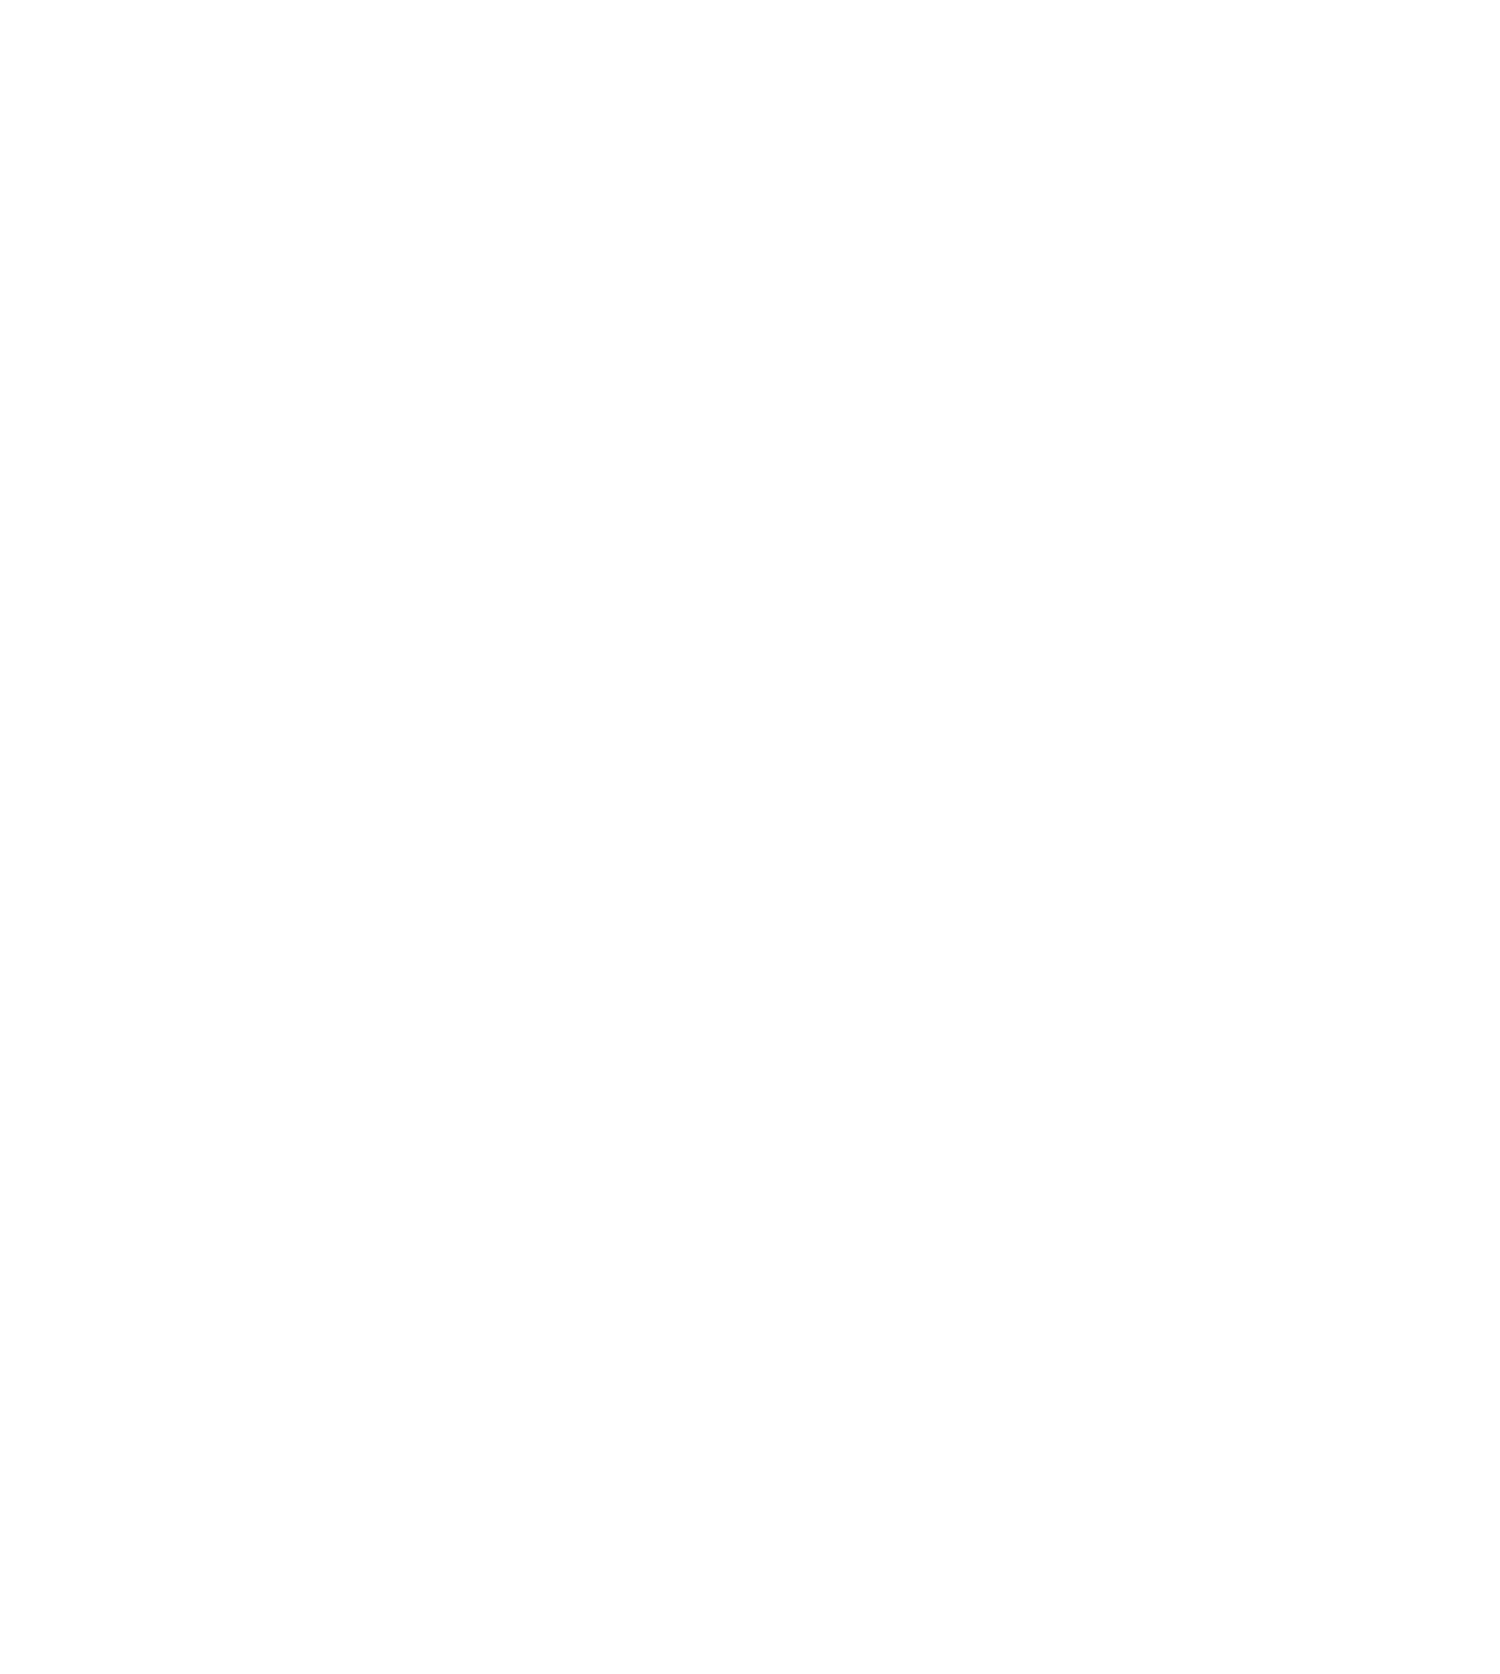 Film Mongers | Video Production Company London